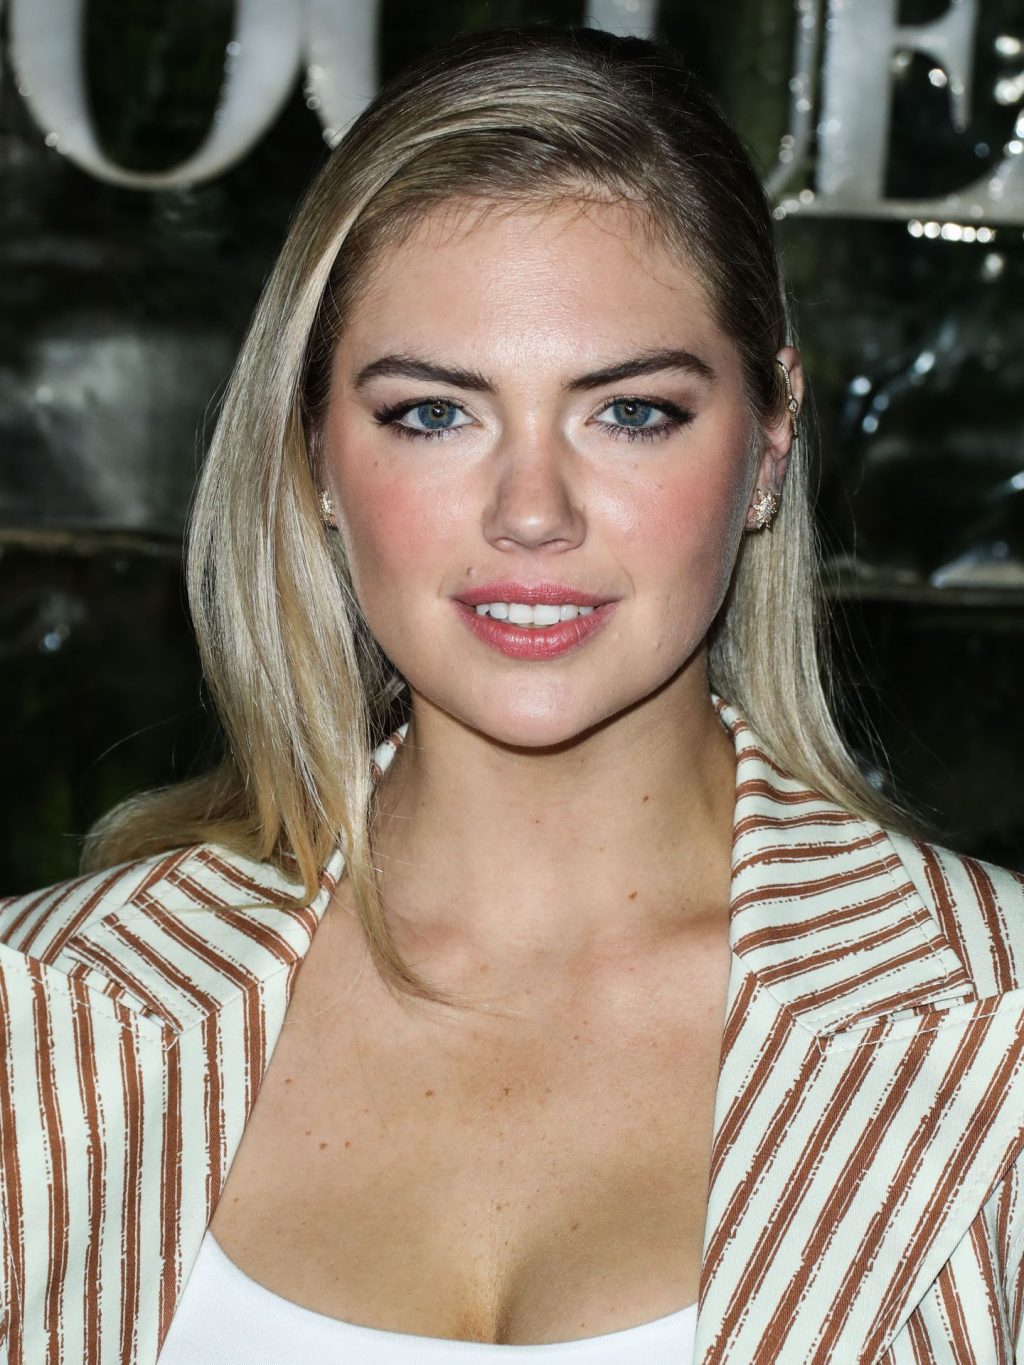 Kate Upton Sexy The Fappening Blog 64 1024x1365 - Kate Upton Attends Canada Goose And Vogue Cocktails & Conversations (104 Photos)